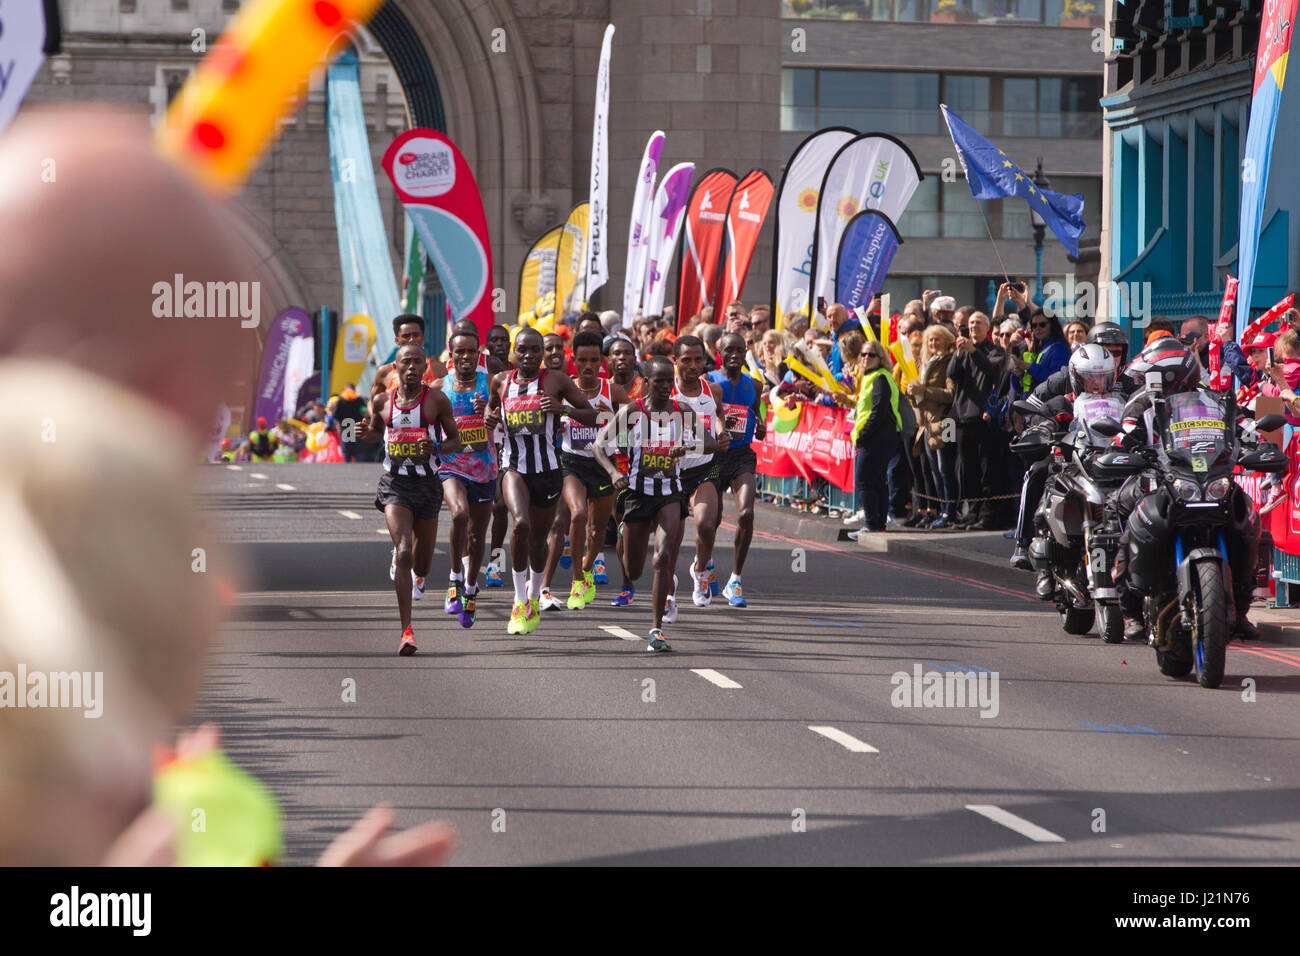 London, UK. 23rd April, 2017. LONDON MARATHON 2017. Today an estimated 50,000 runners took to the streets of the - Stock Image